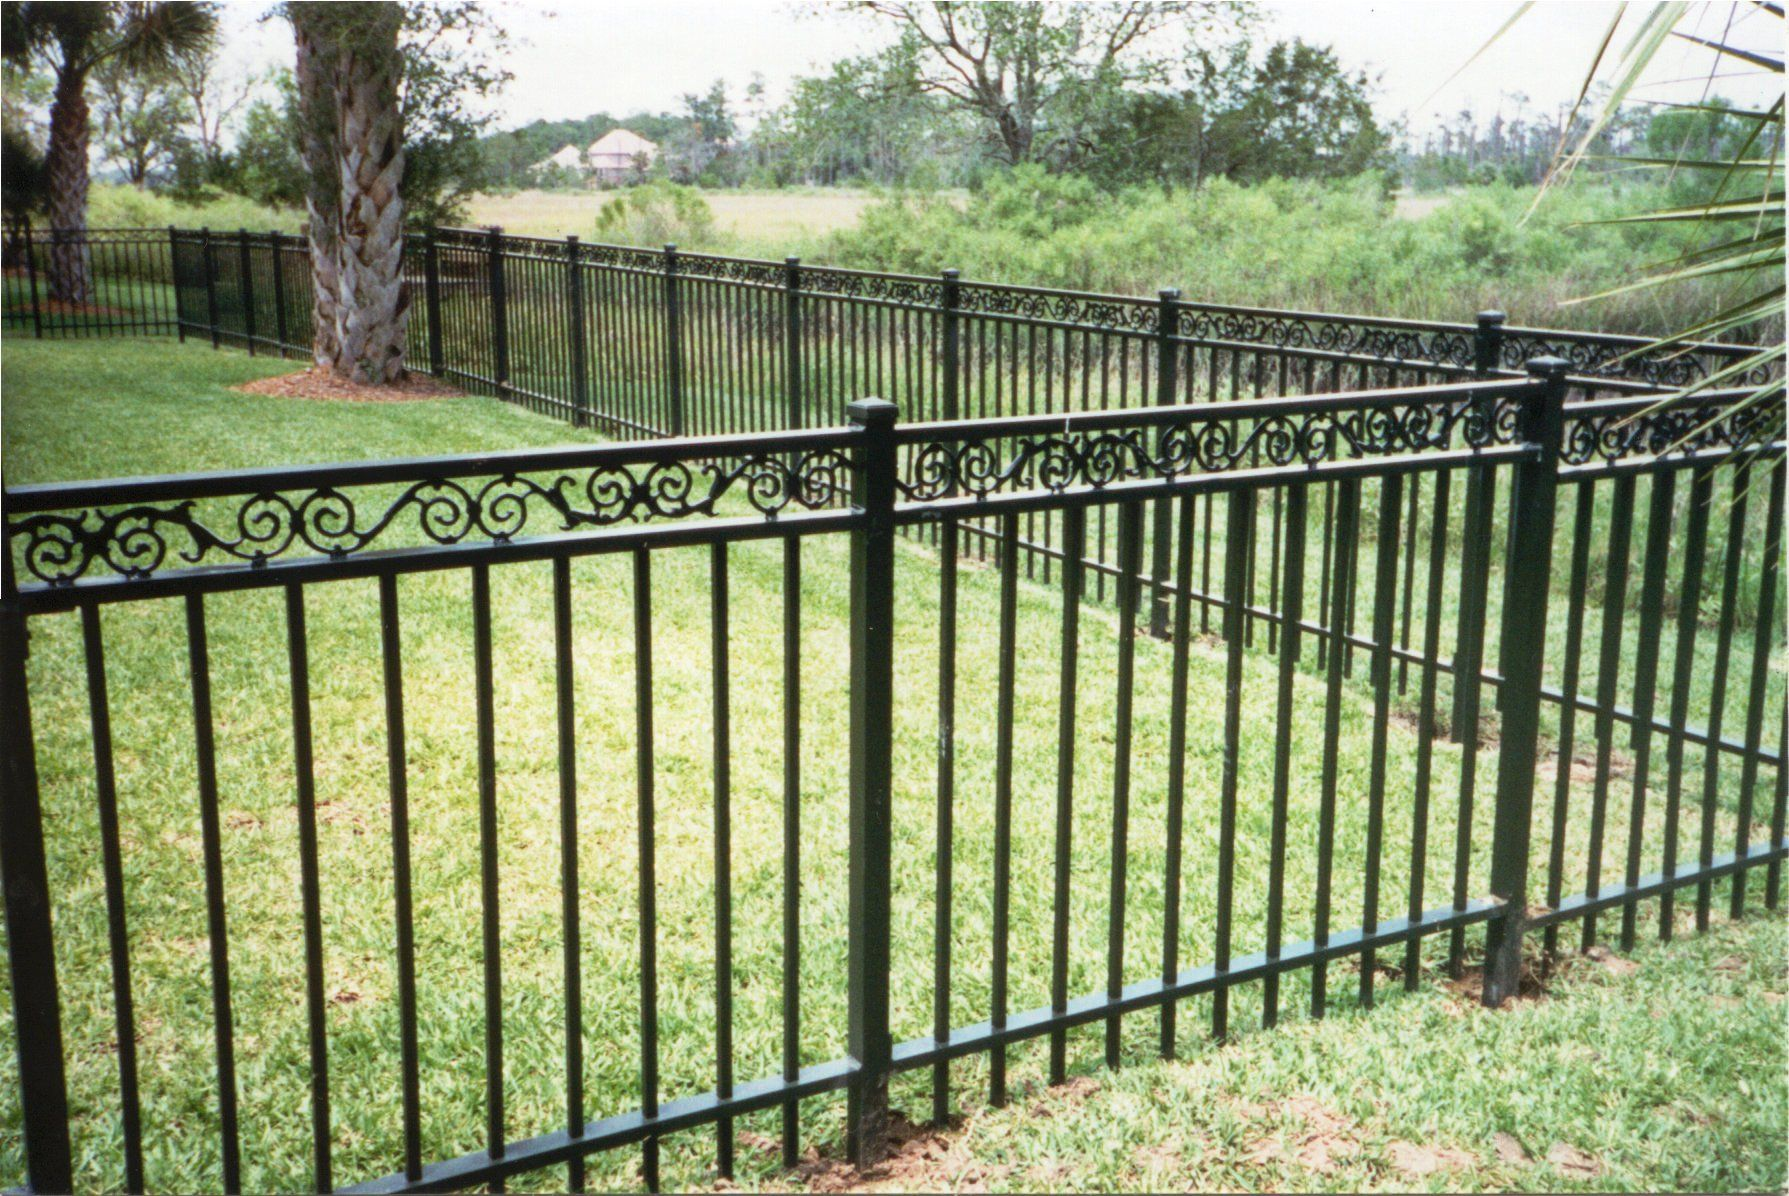 Types of fences. Wrought iron fence 73